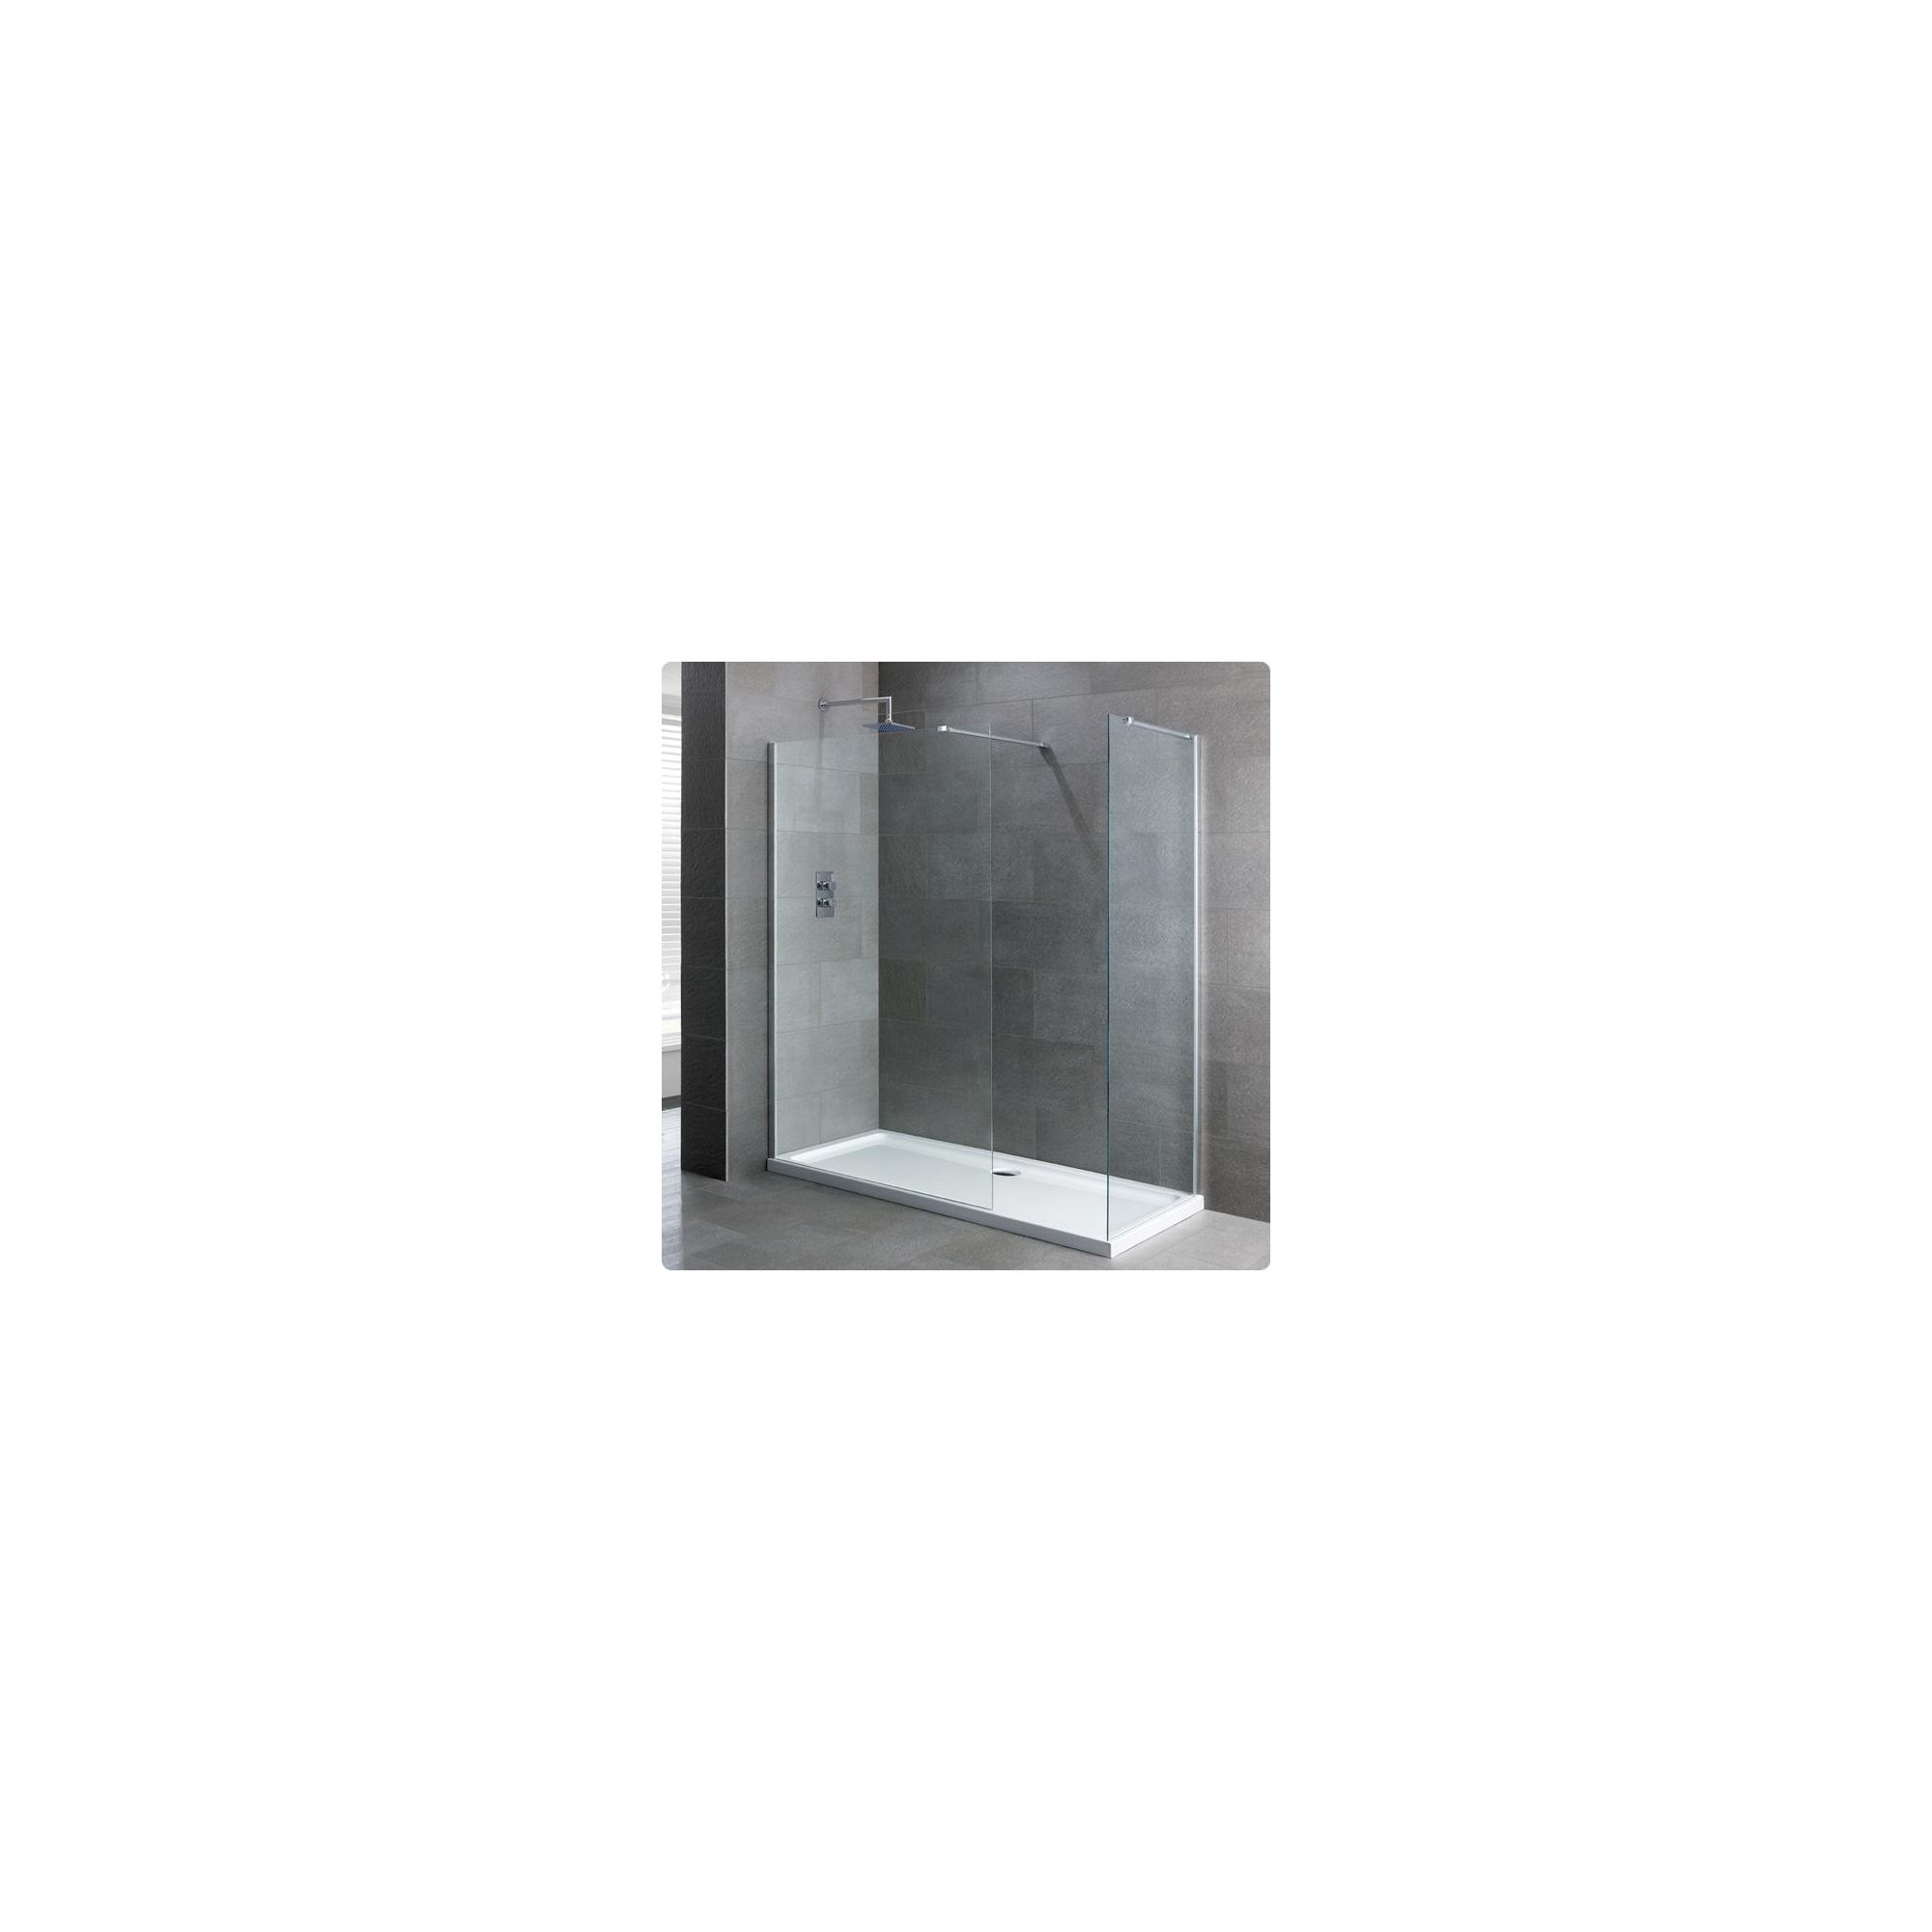 Duchy Select Silver Walk-In Shower Enclosure 1500mm x 800mm, Standard Tray, 6mm Glass at Tesco Direct